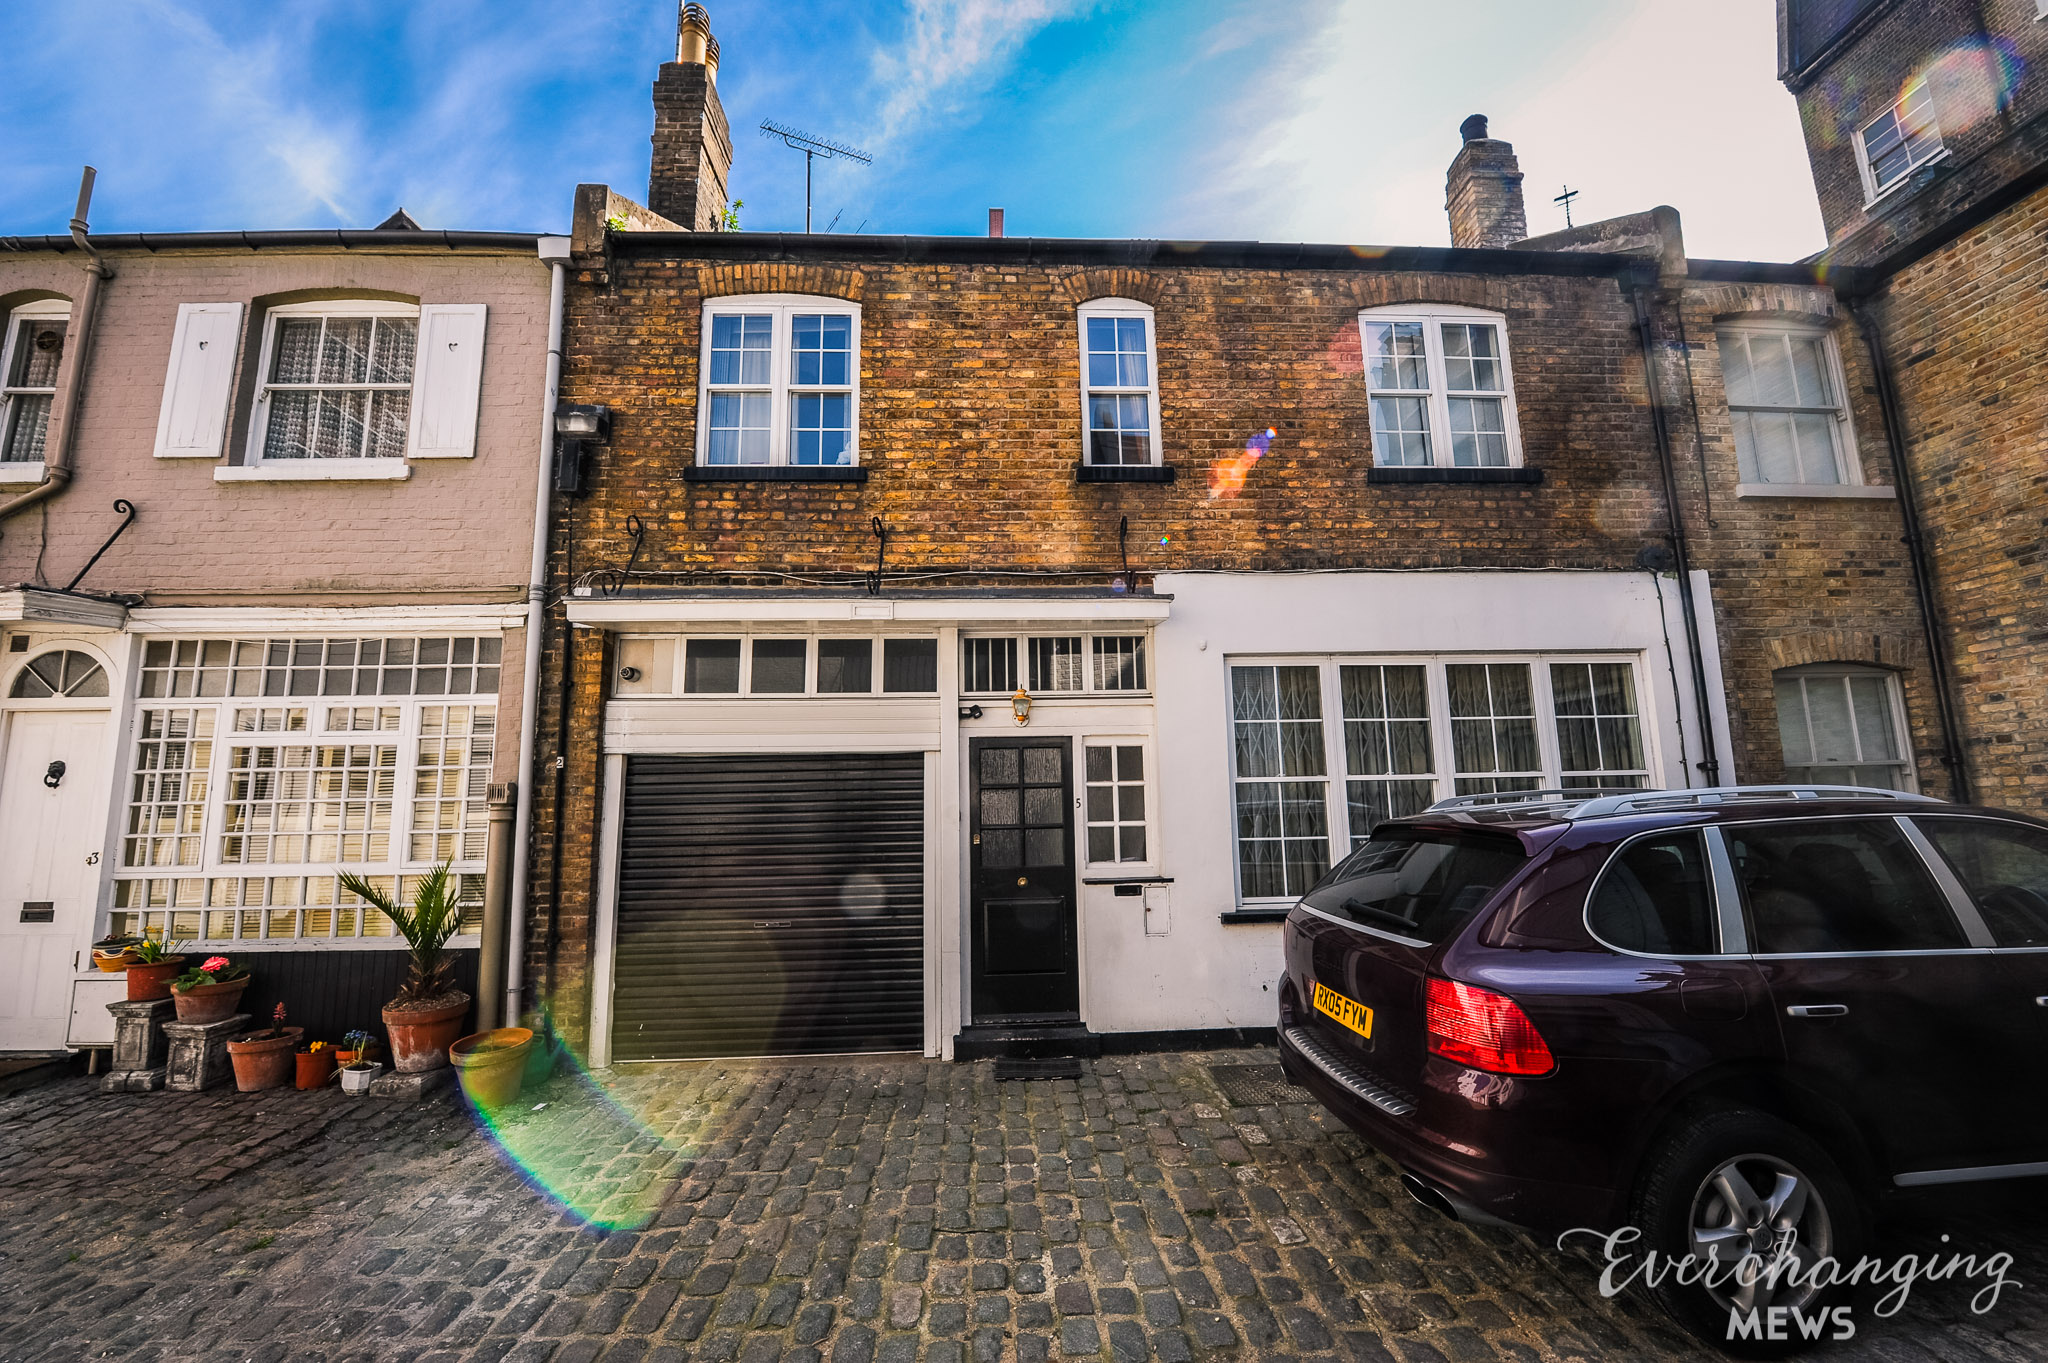 Fosbury mews everchanging mews for 2 6 inverness terrace london